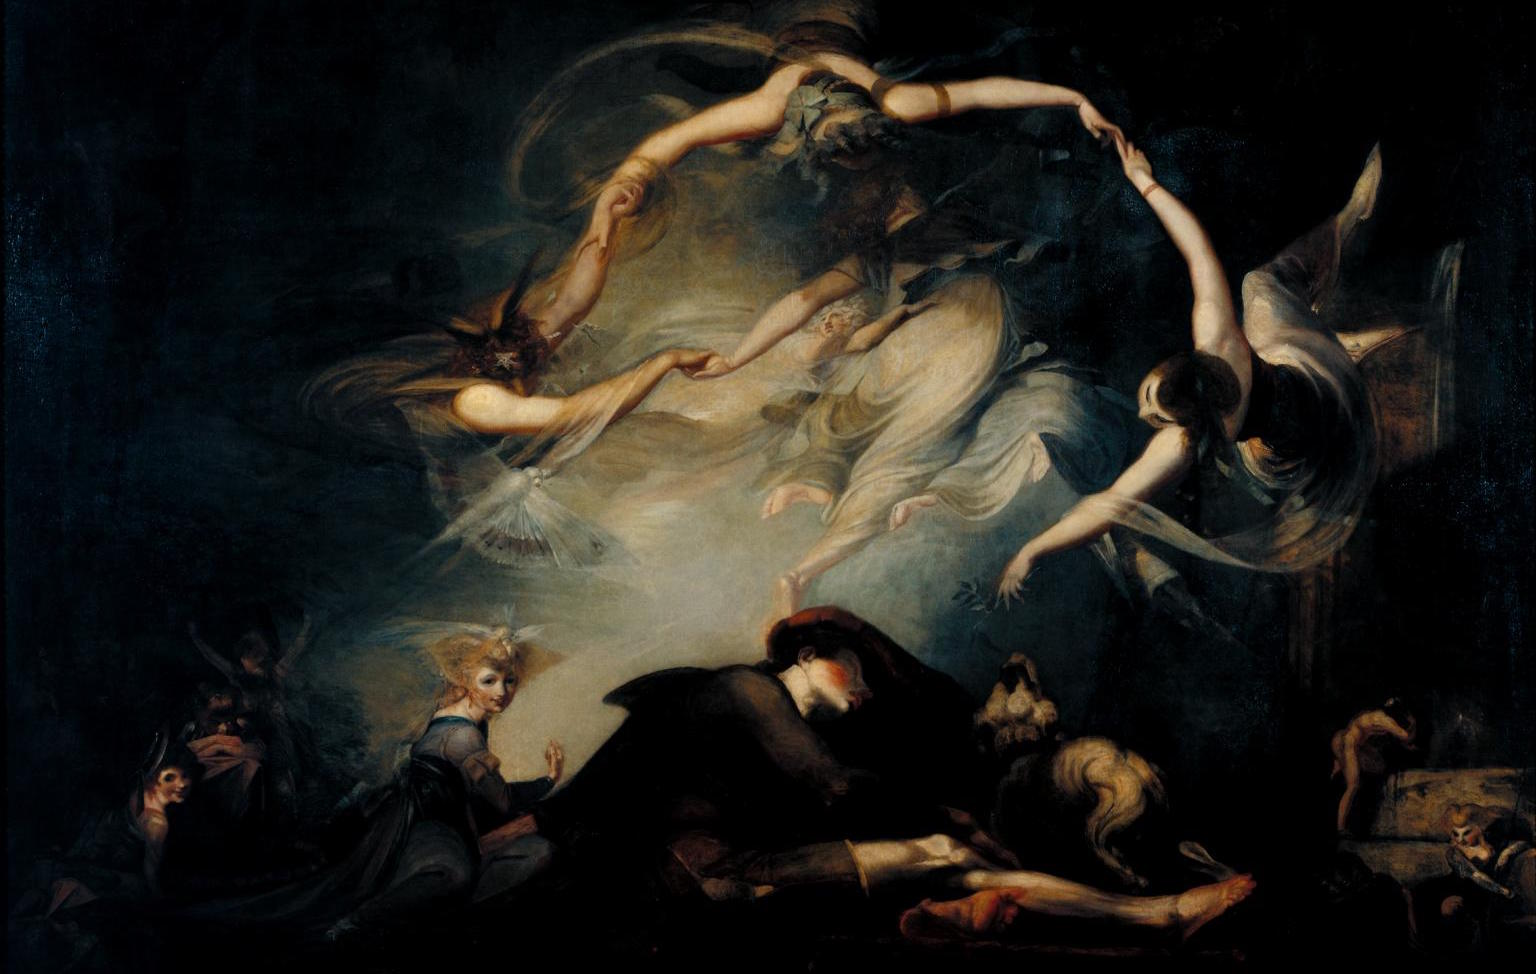 The Shepherd's Dream, from 'Paradise Lost' 1793 Henry Fuseli 1741-1825 Purchased 1966 http://www.tate.org.uk/art/work/T00876